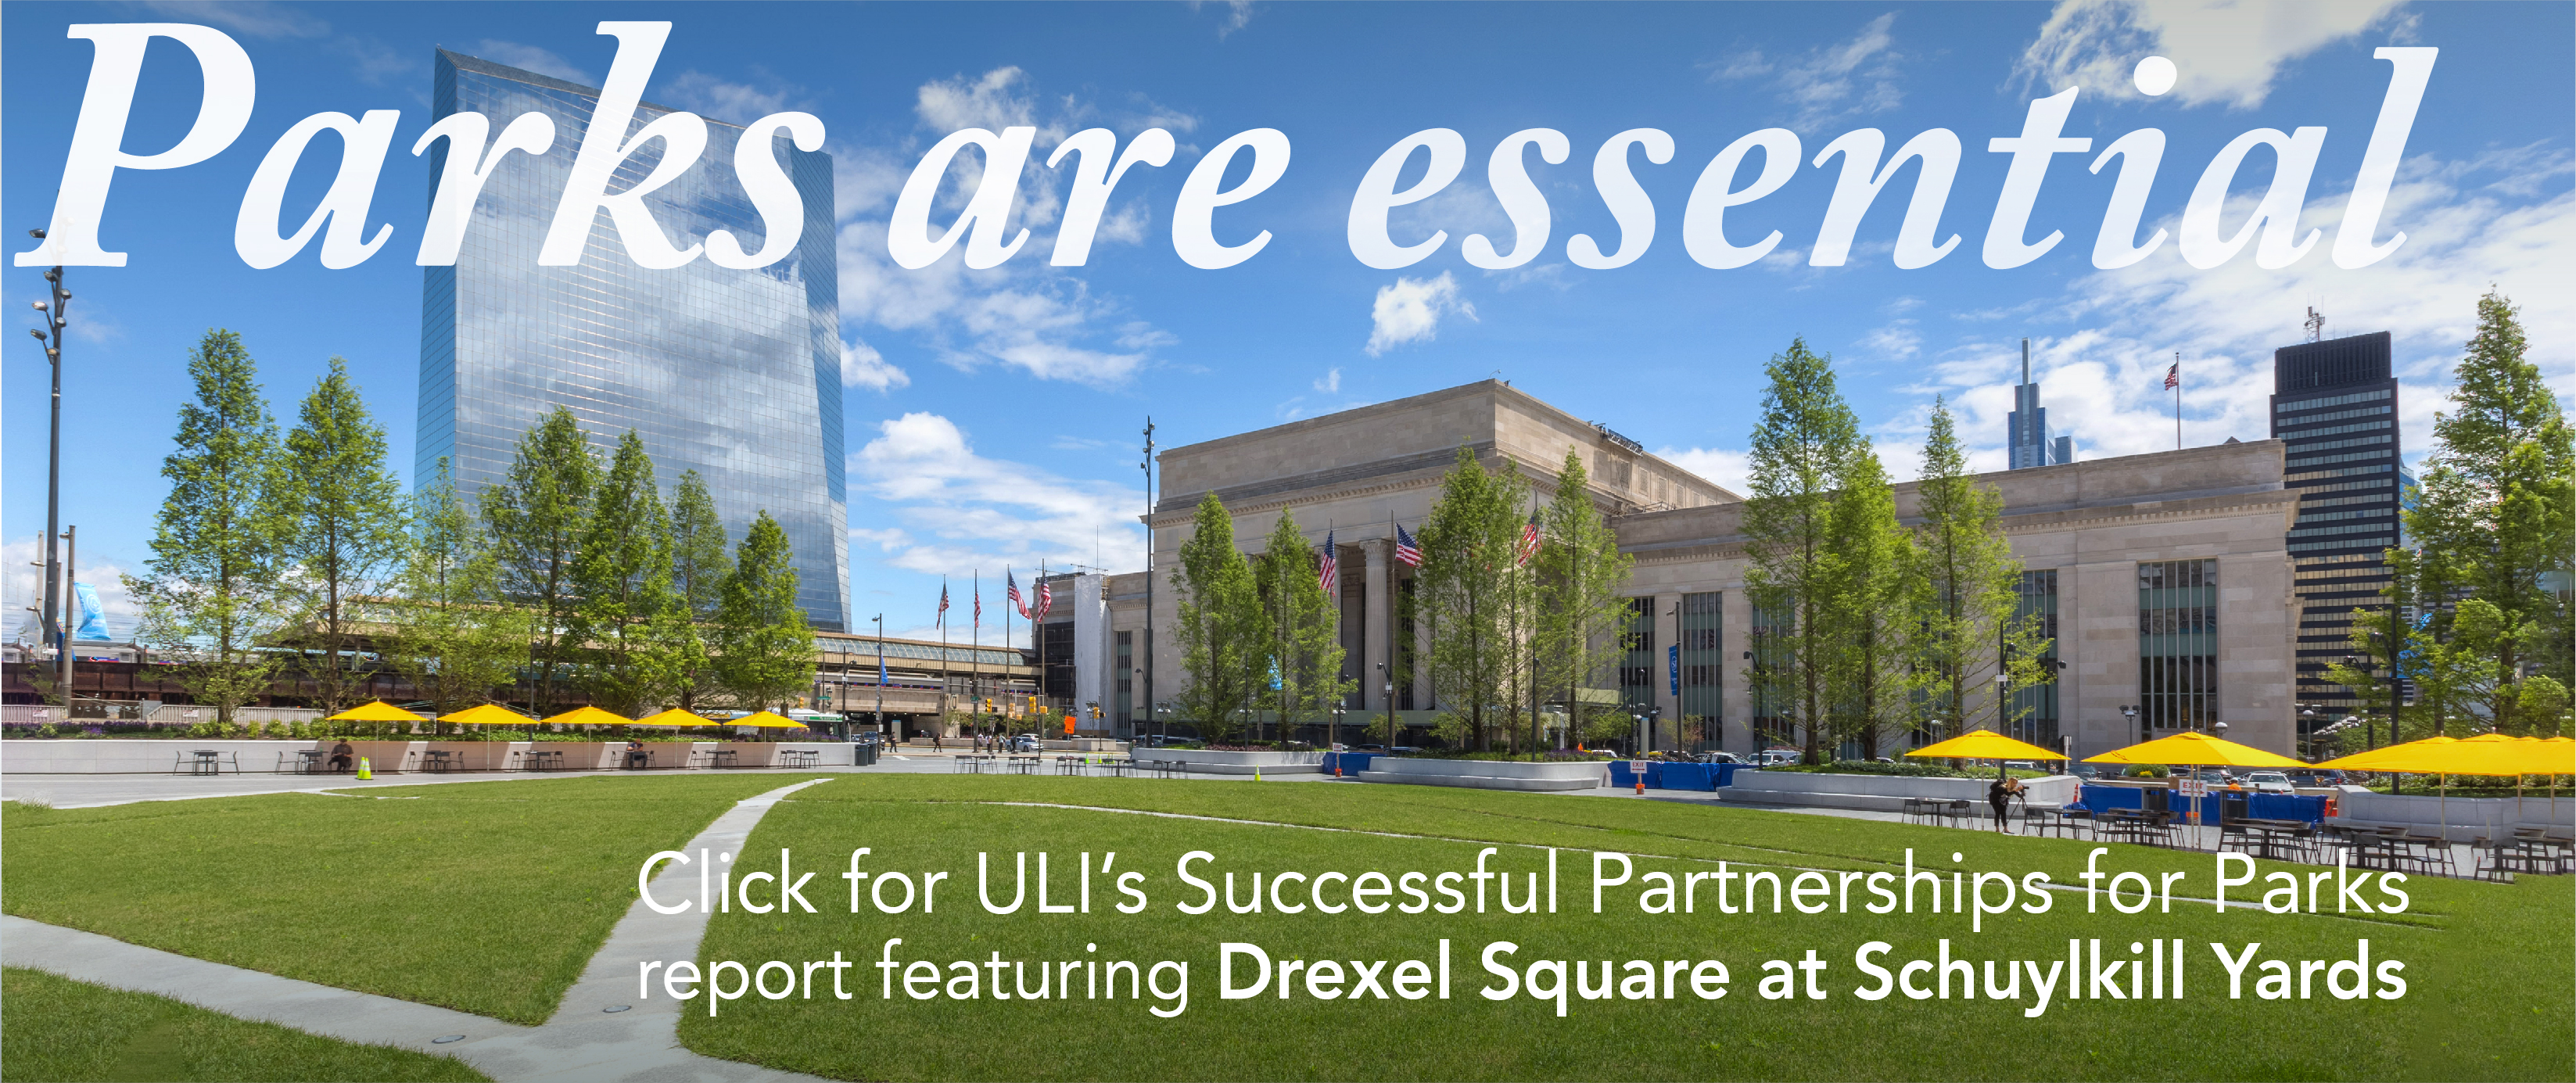 ULI Successful Partnership: Drexel Square